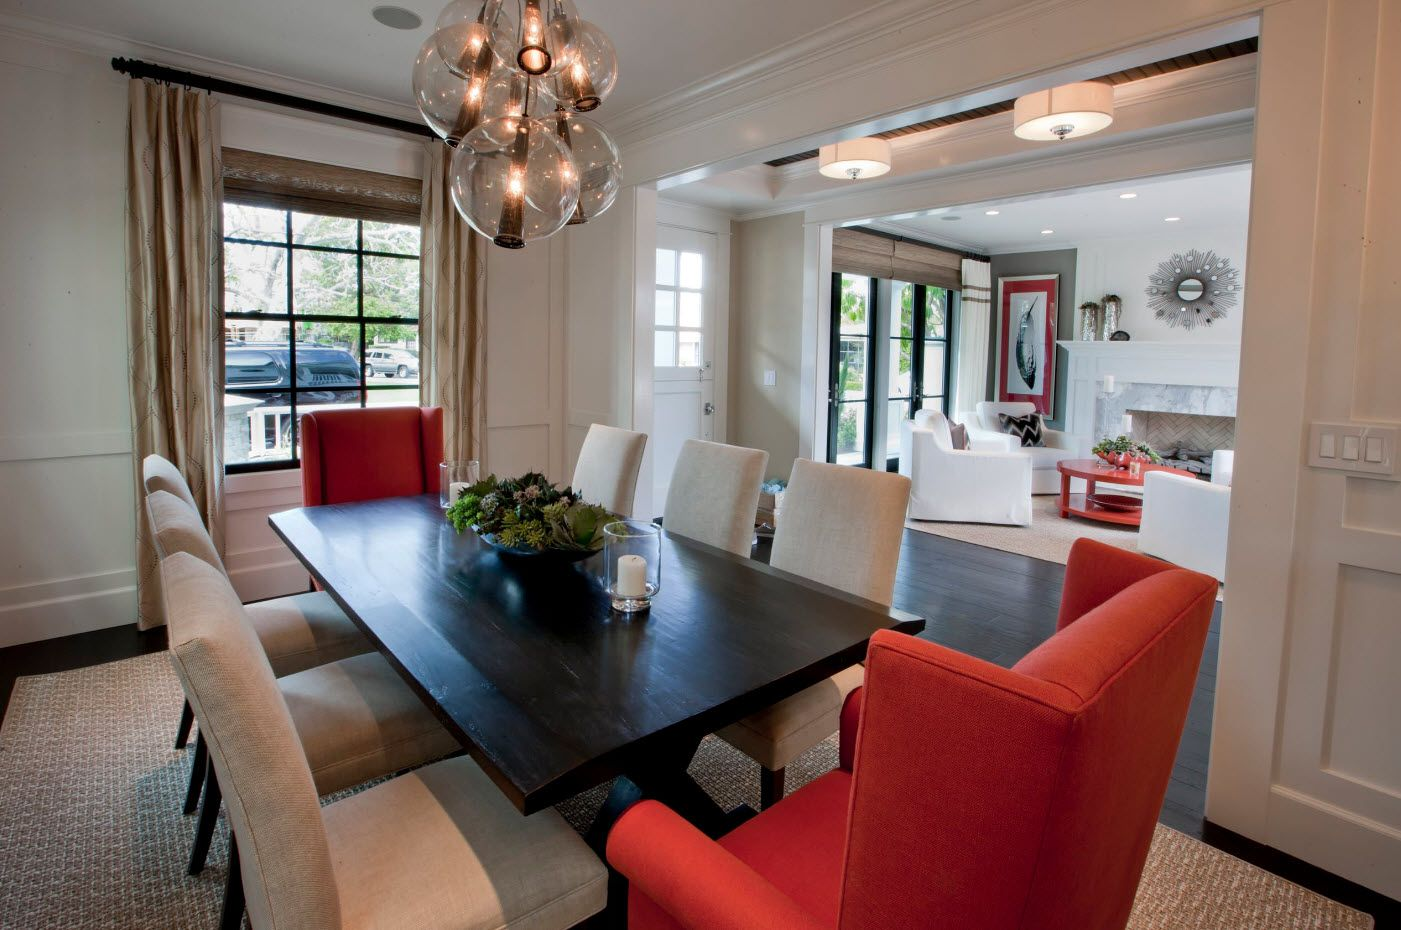 Red armchairs, gray sofa and black table for the accentual filling of the dining room